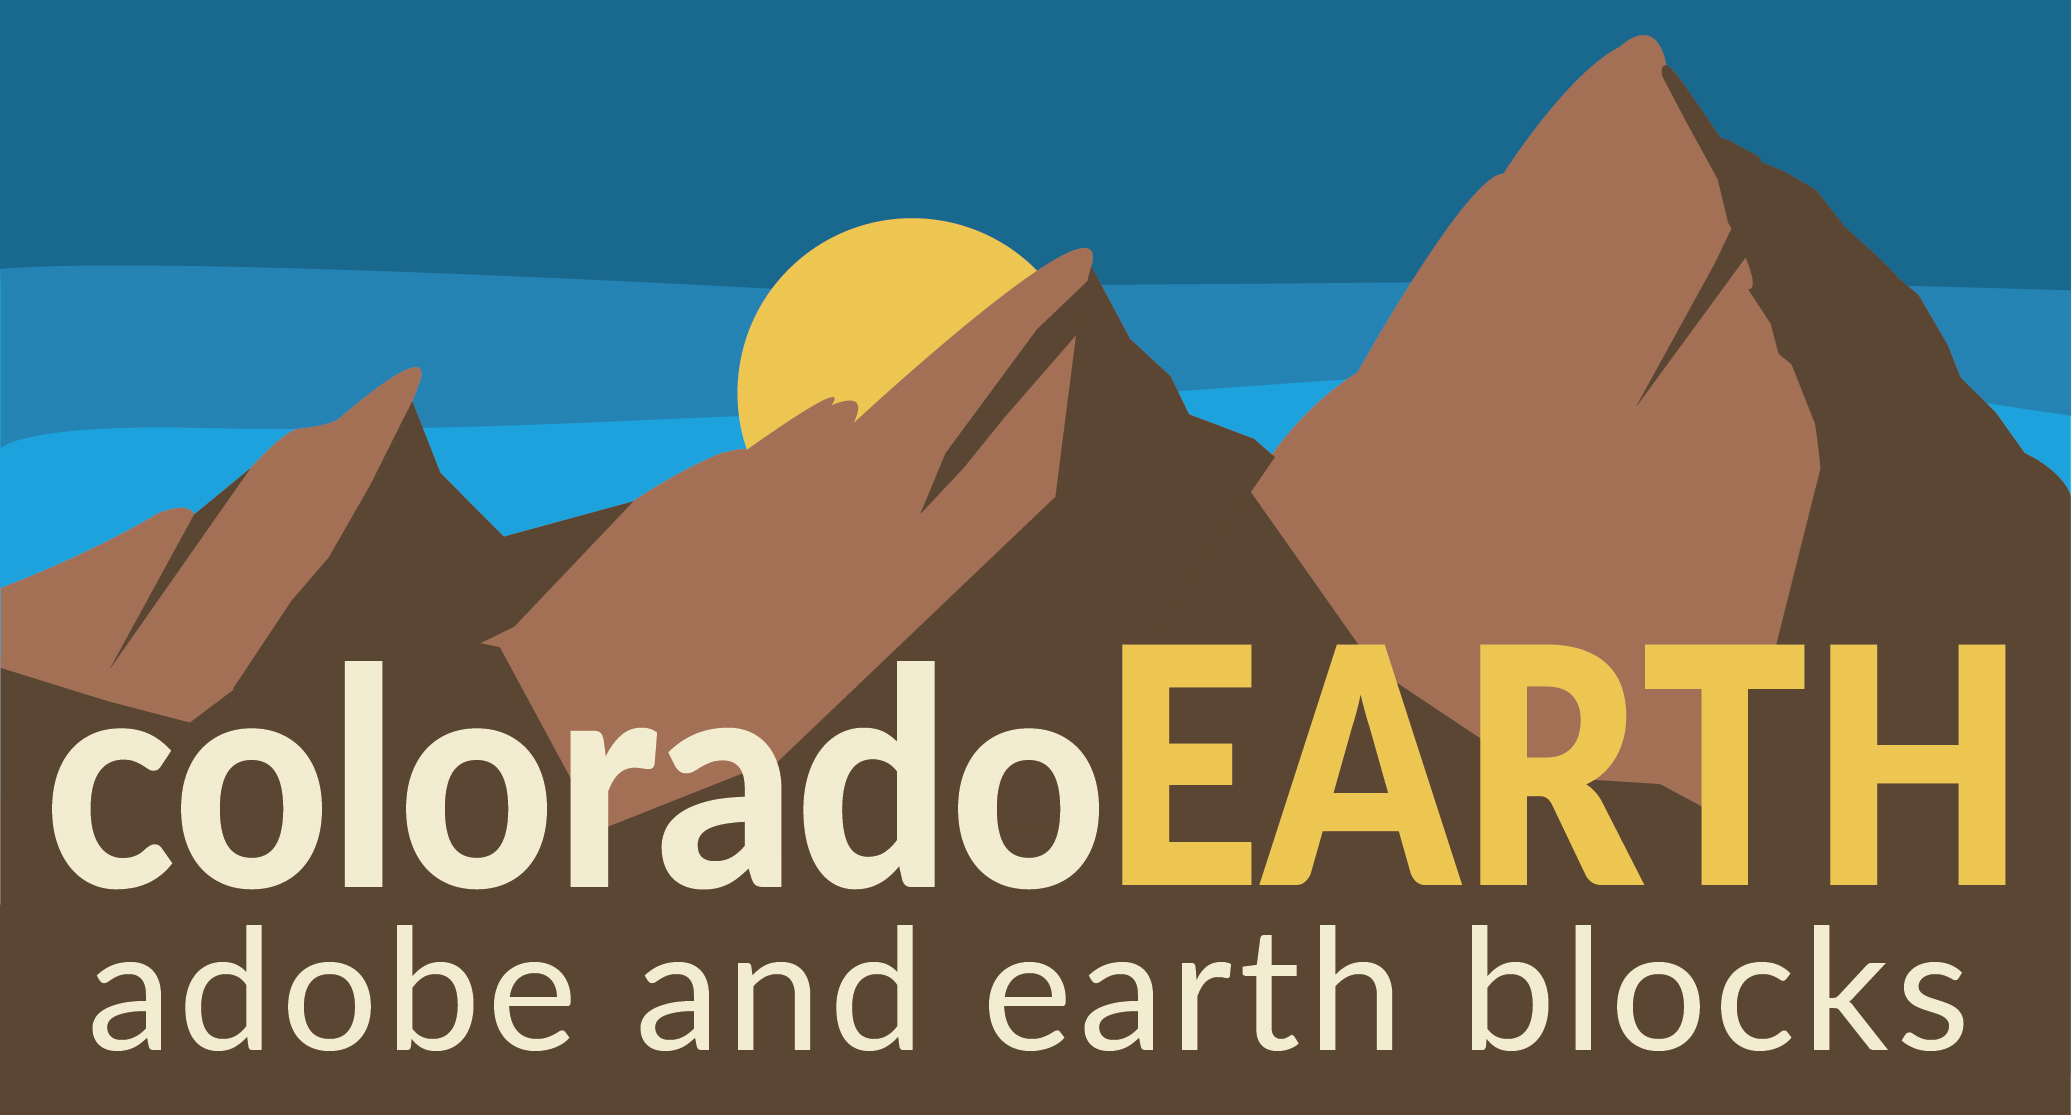 Colorado-Earth-Logo.jpg